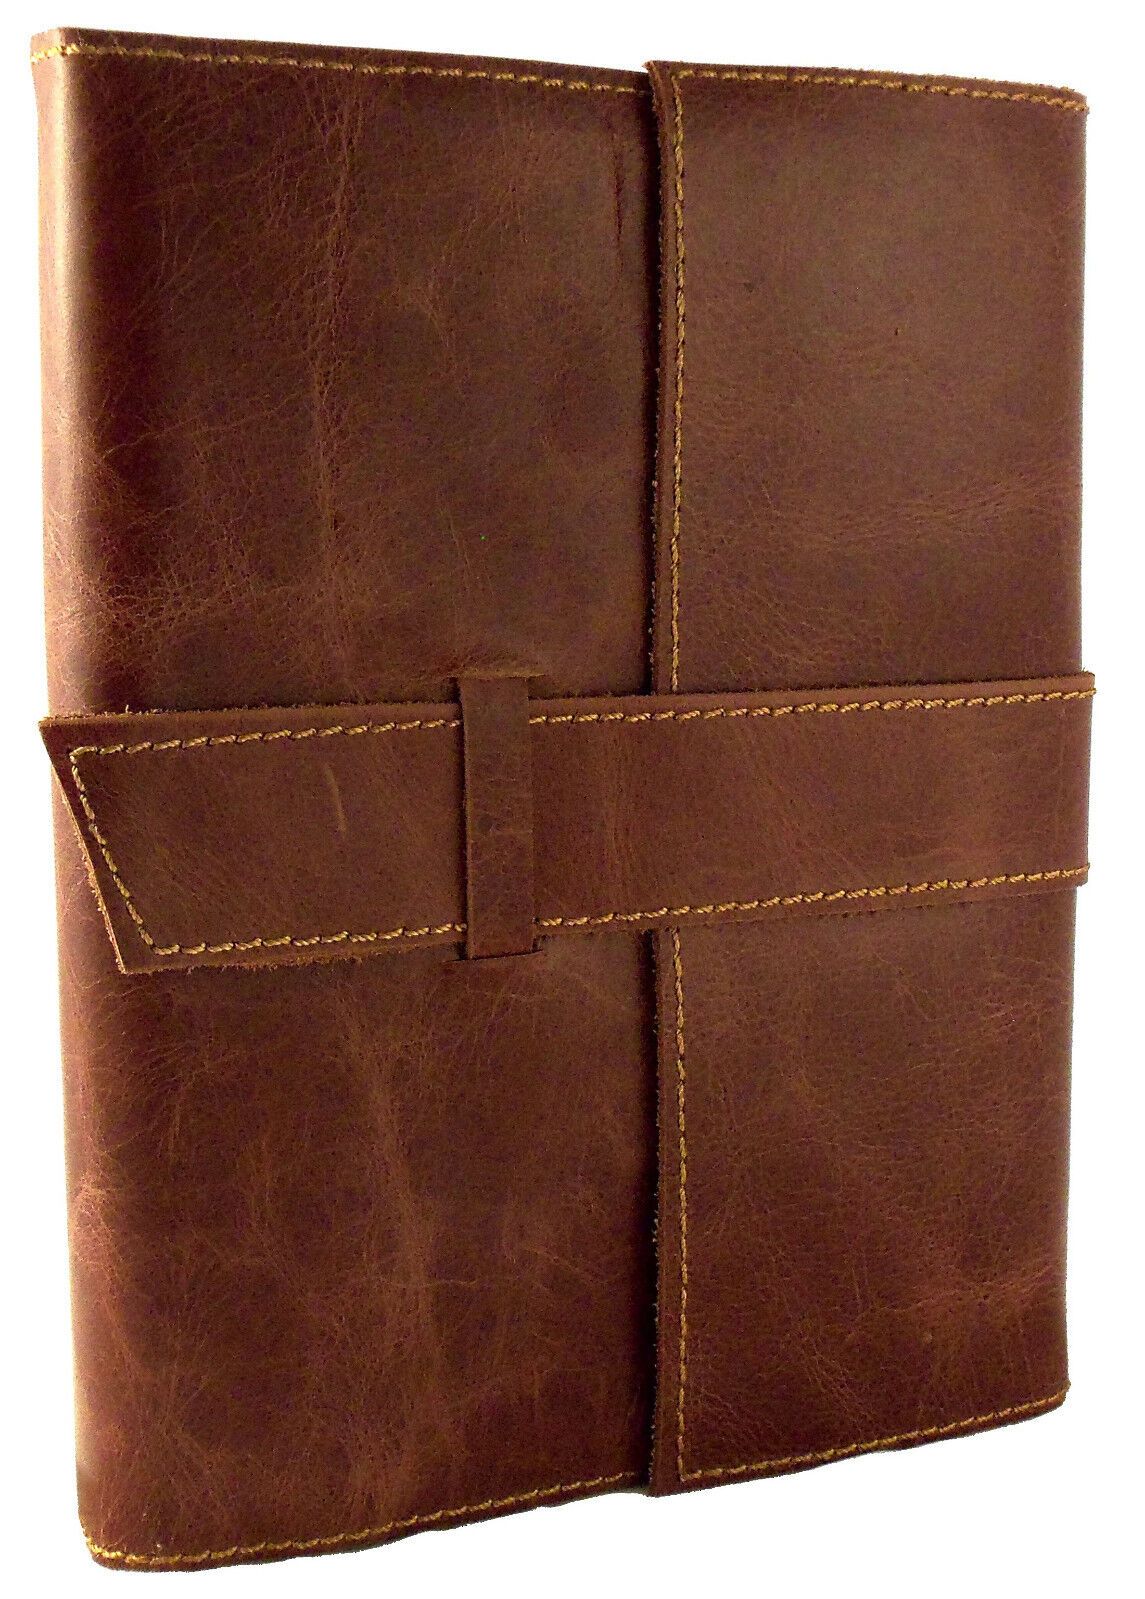 Refillable Leather Journal Sketchbook Vintage Leather Diary Notebook Antique 6x8